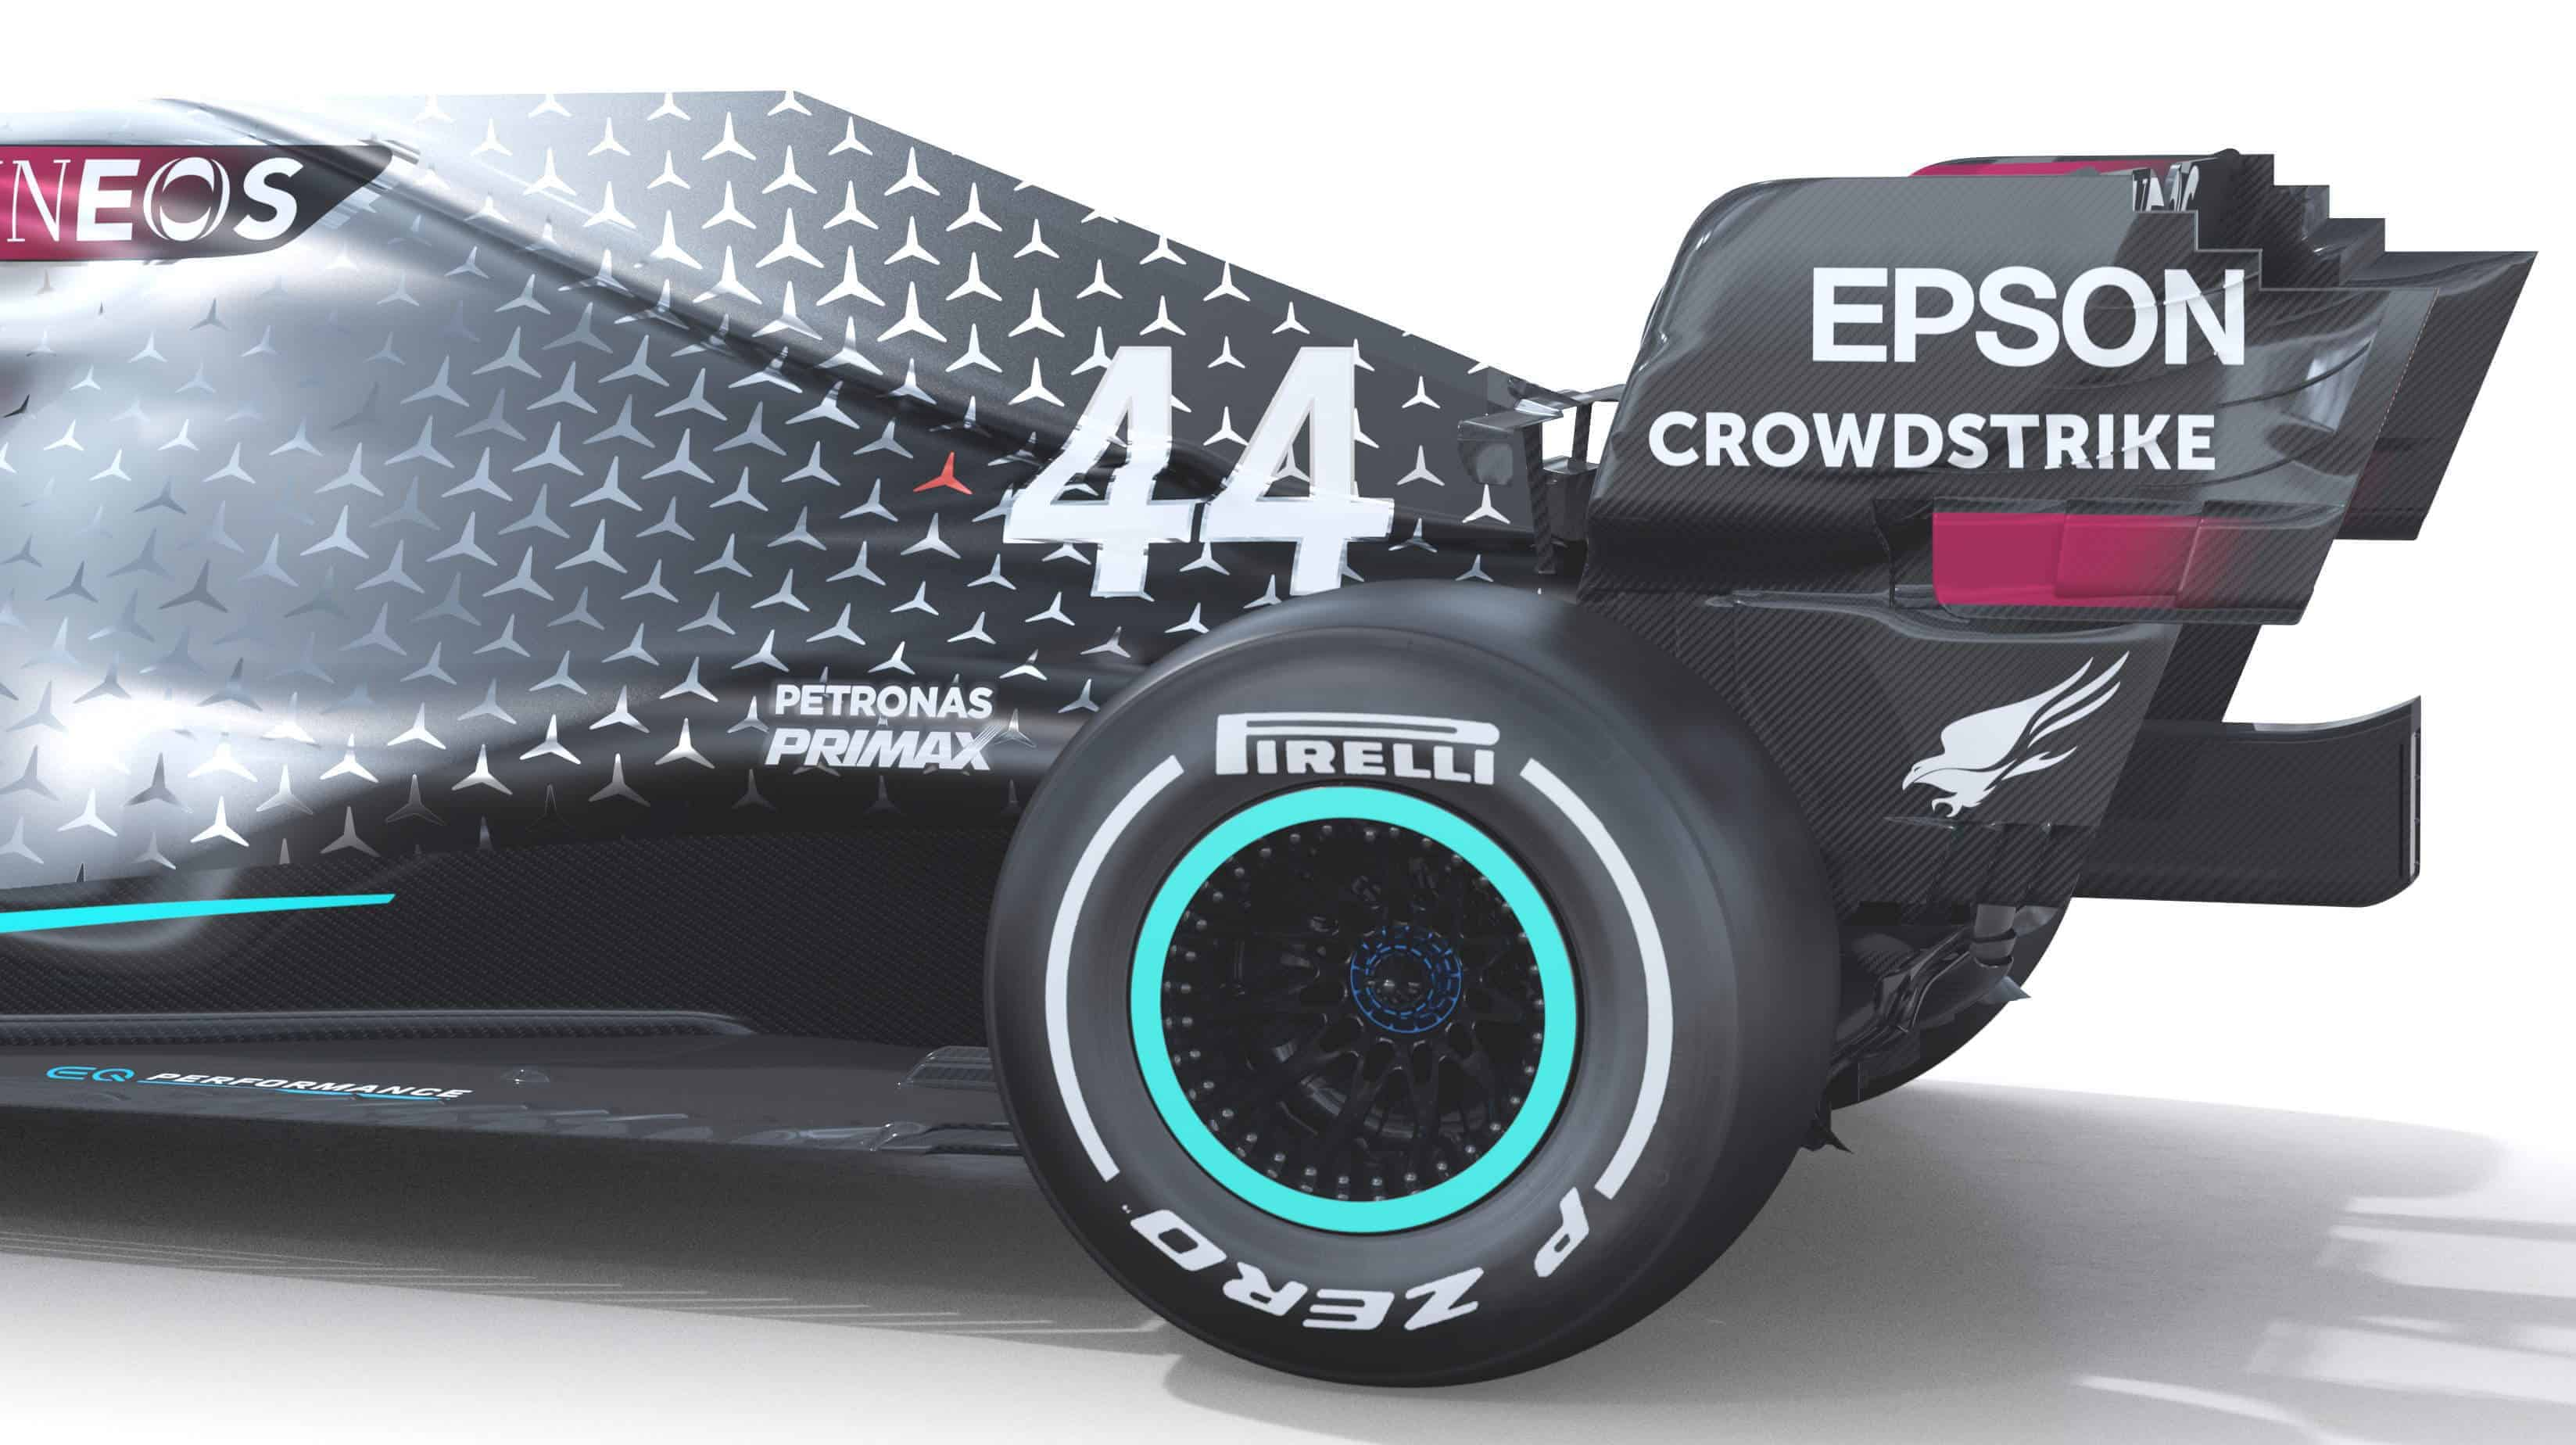 2020 F1 Mercedes F1 W11 rear end angled side view Photo Daimler Edited by MAXF1net